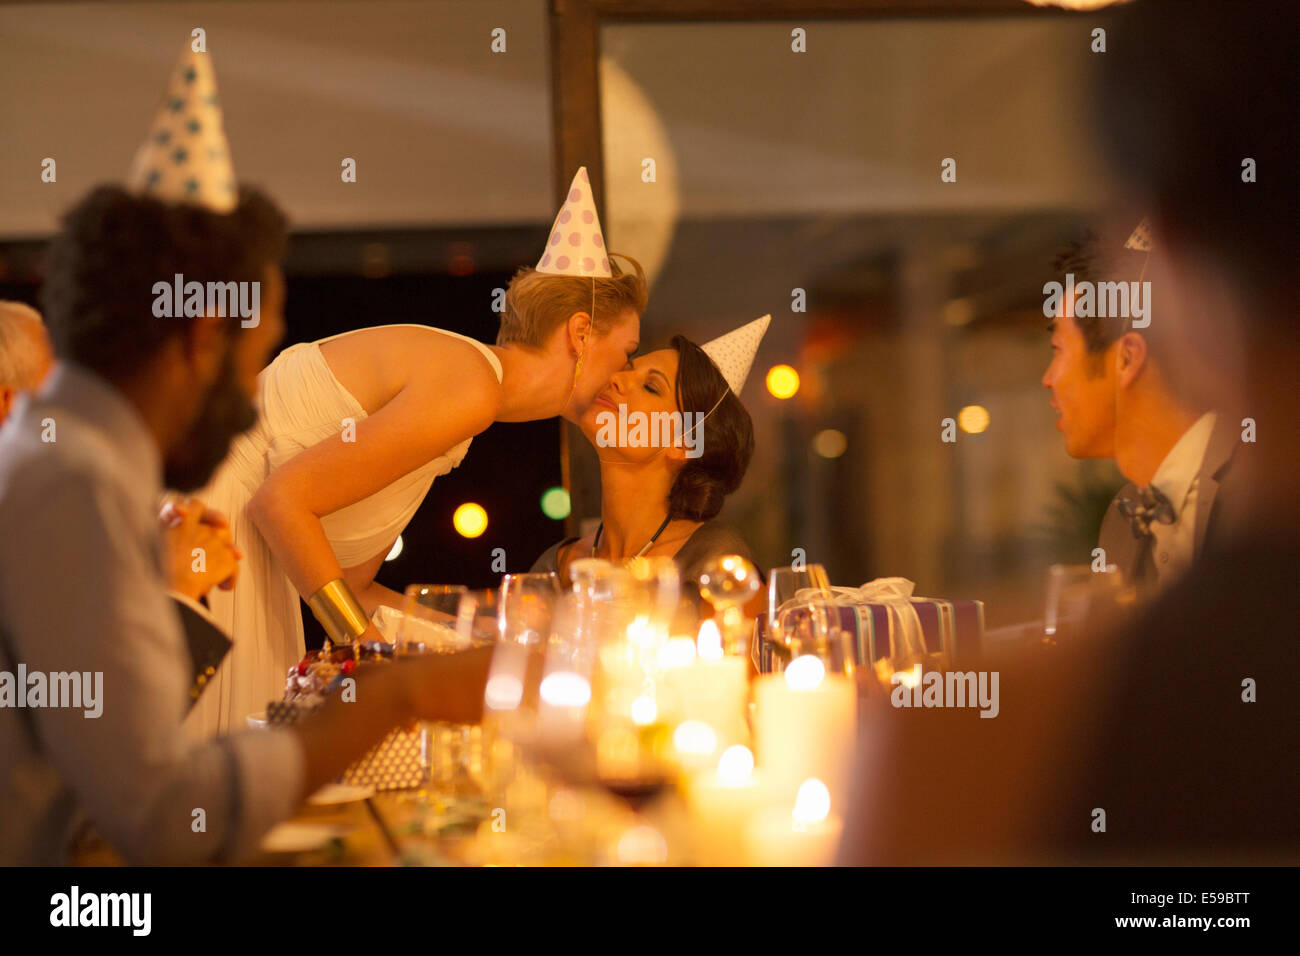 Woman kissing friend's cheek at birthday party - Stock Image